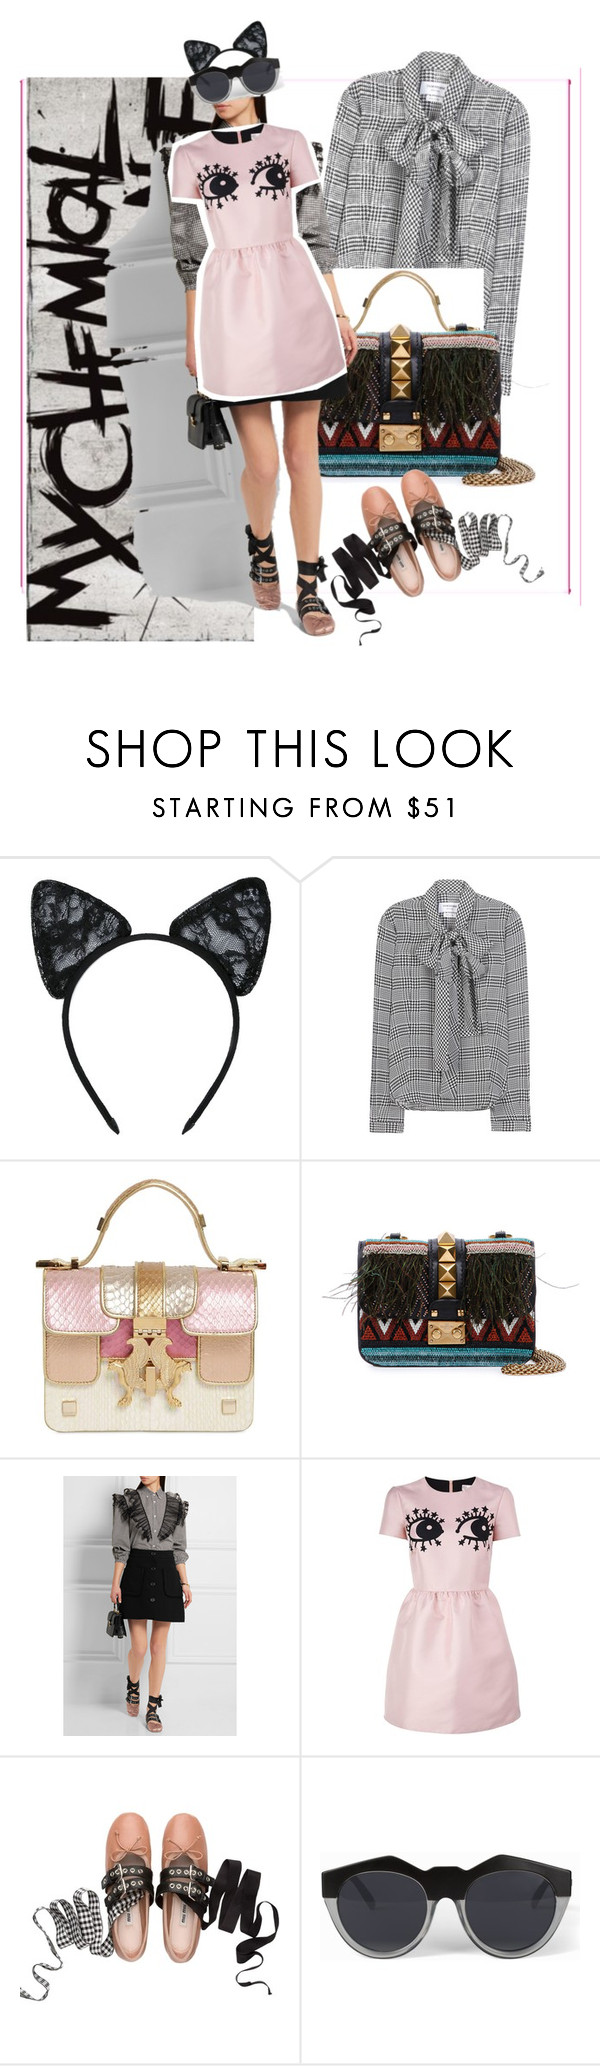 """""""Untitled #21"""" by reemkhater ❤ liked on Polyvore featuring Maison Close, Thom Browne, Giancarlo Petriglia, Valentino, Miu Miu, RED Valentino and Le Specs"""